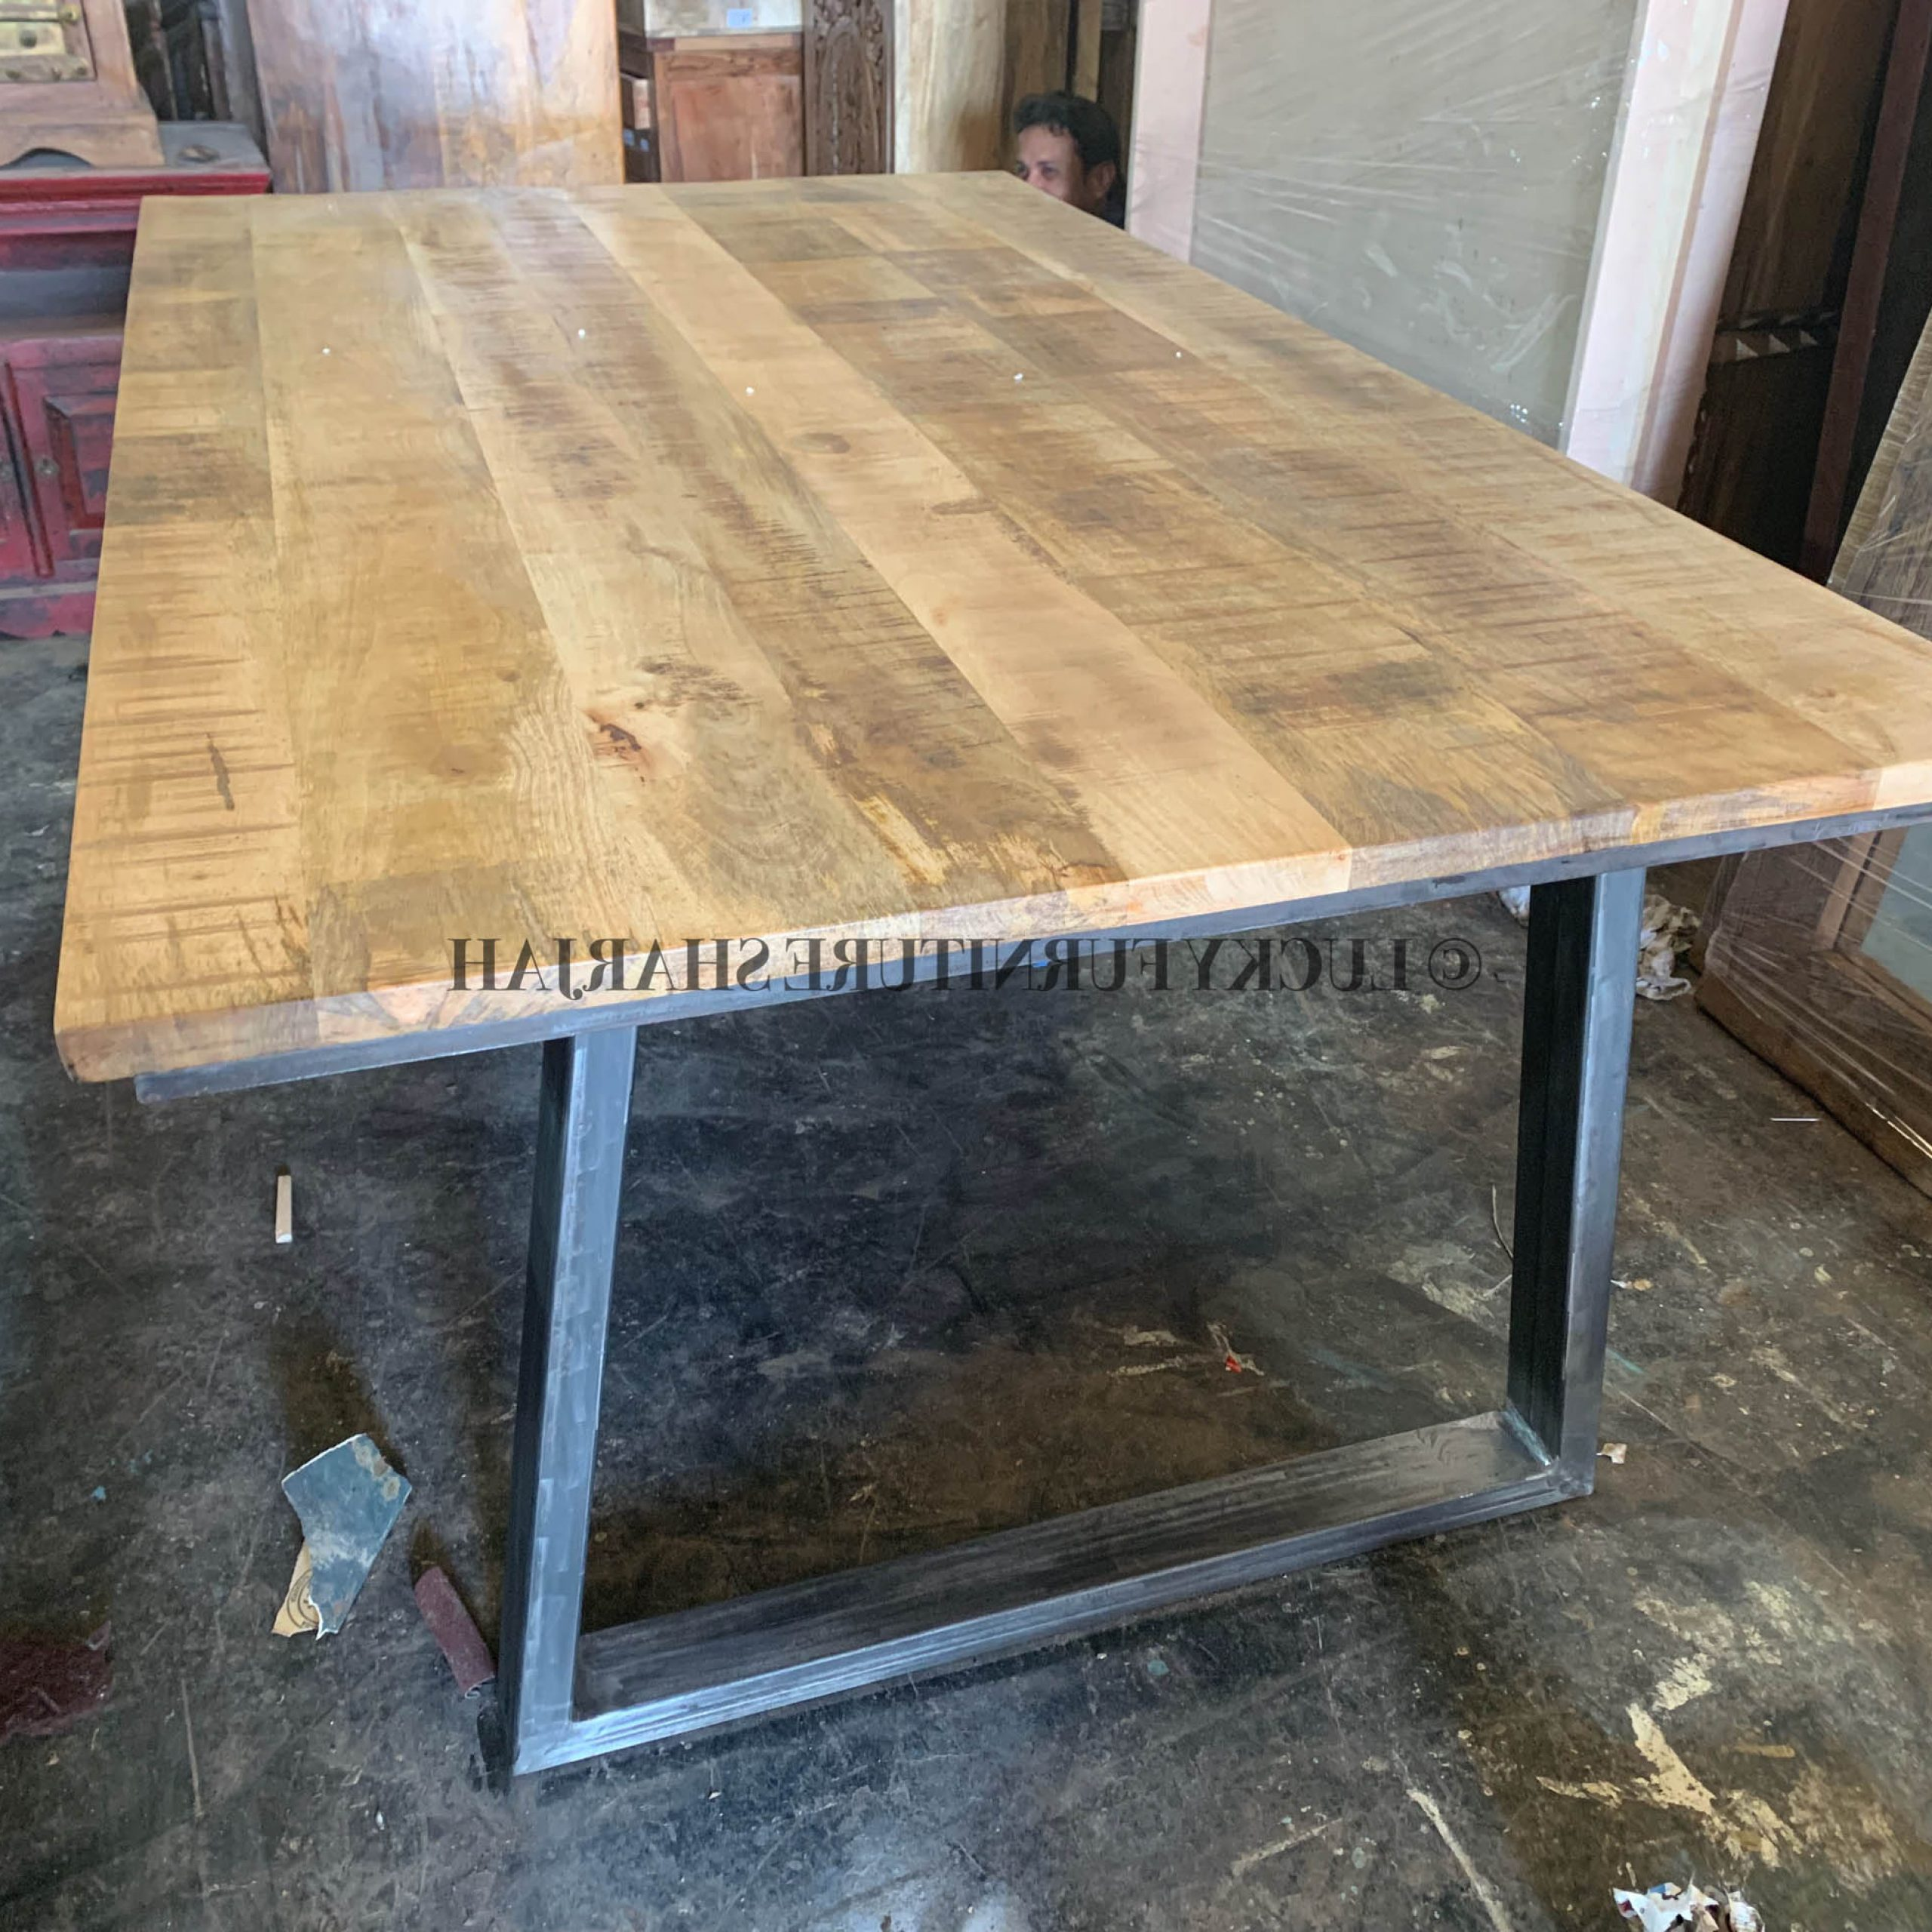 Iron Dining Tables With Mango Wood With Regard To Most Recently Released Lucky Furniture & Handicraftsuae Wooden Furniture Dubai (View 5 of 30)